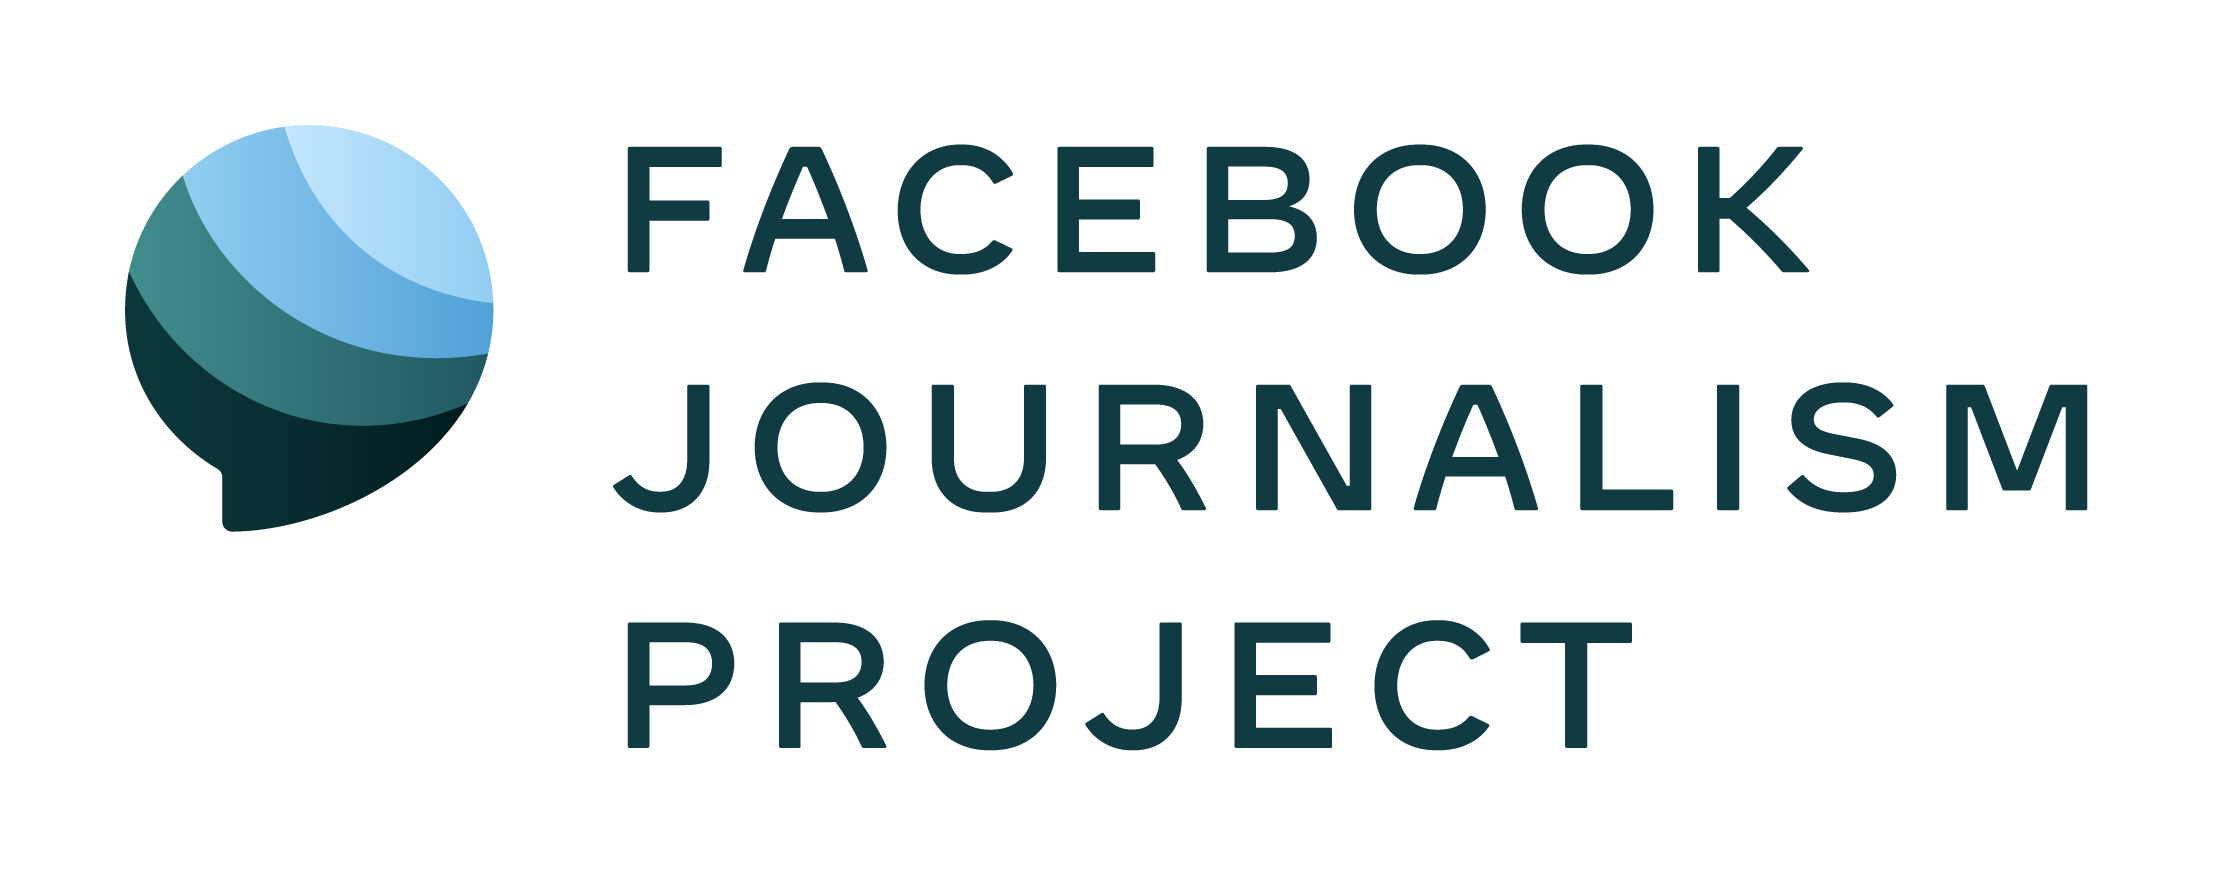 Facebook_Journalism_Project_symbol_lockup_fc_gradient_l_rgb